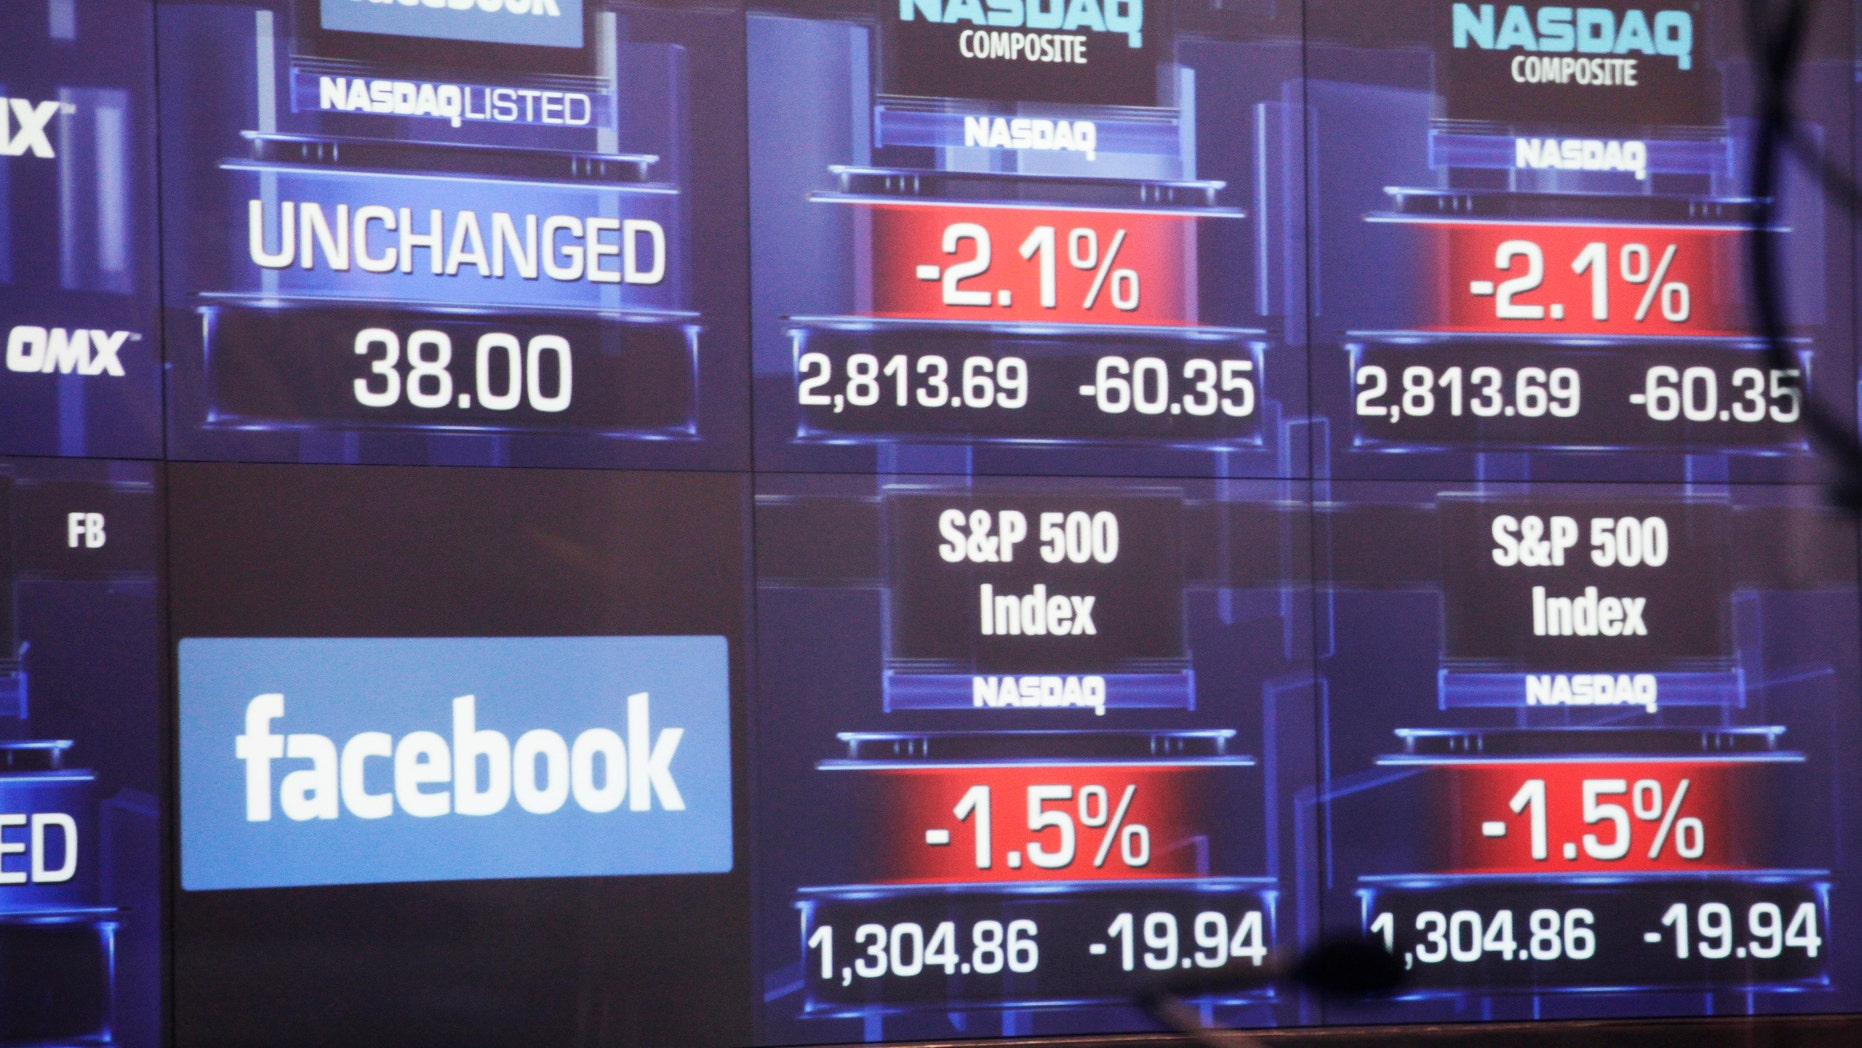 May 18, 2012: Electronic screens inside the Nasdaq stock market announce the listing of Facebook shares before the start of trading in New York.